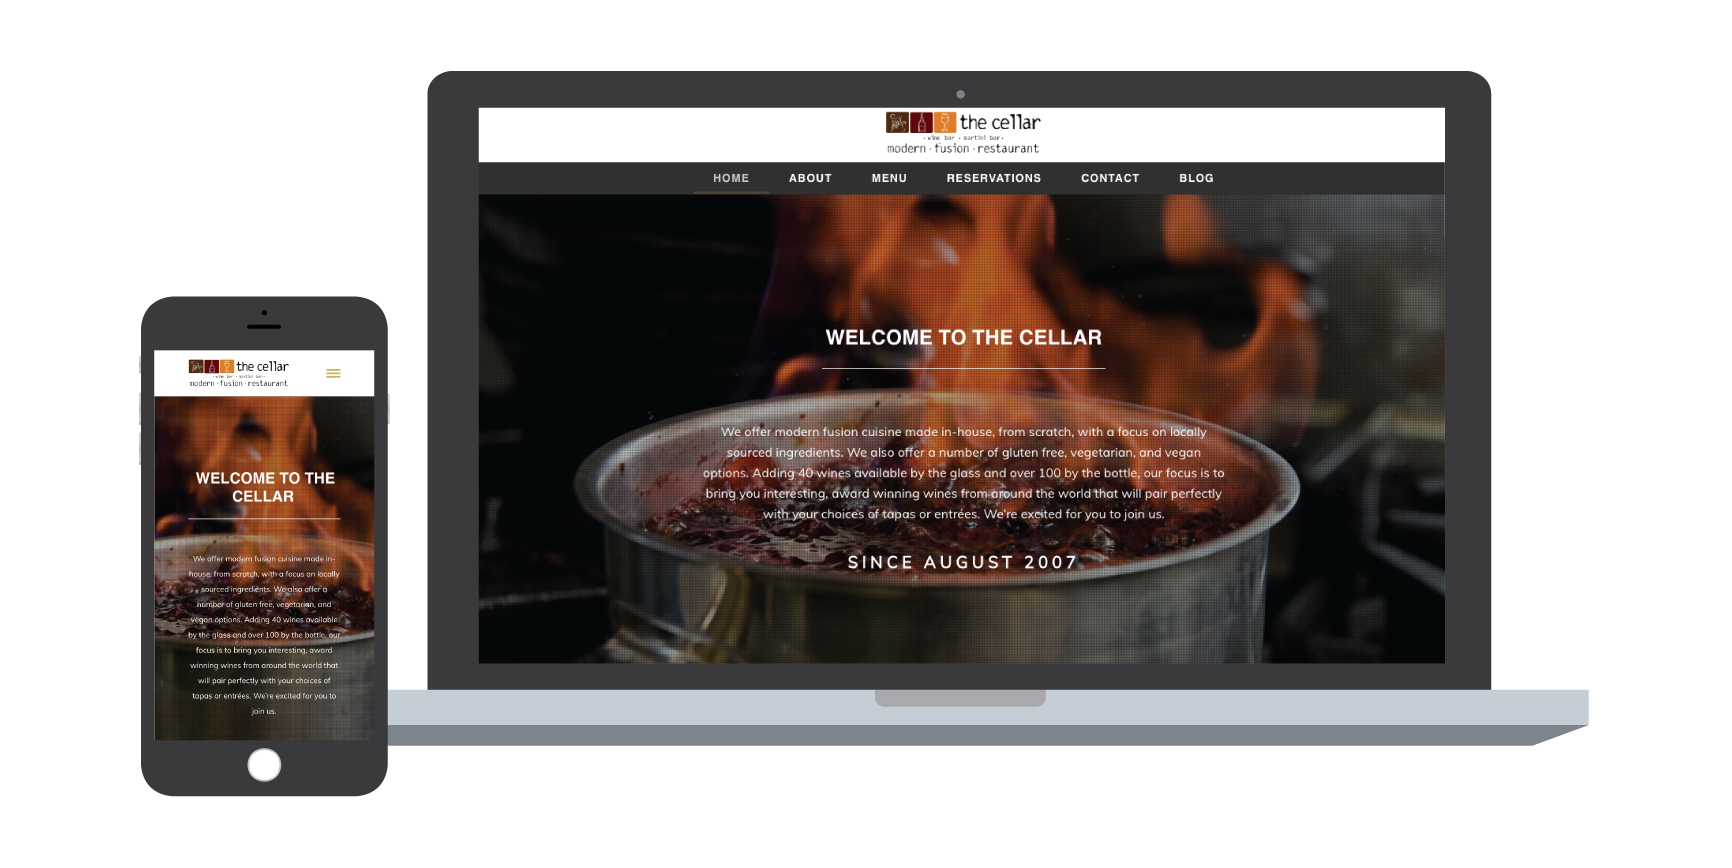 the cellar website design corning ny